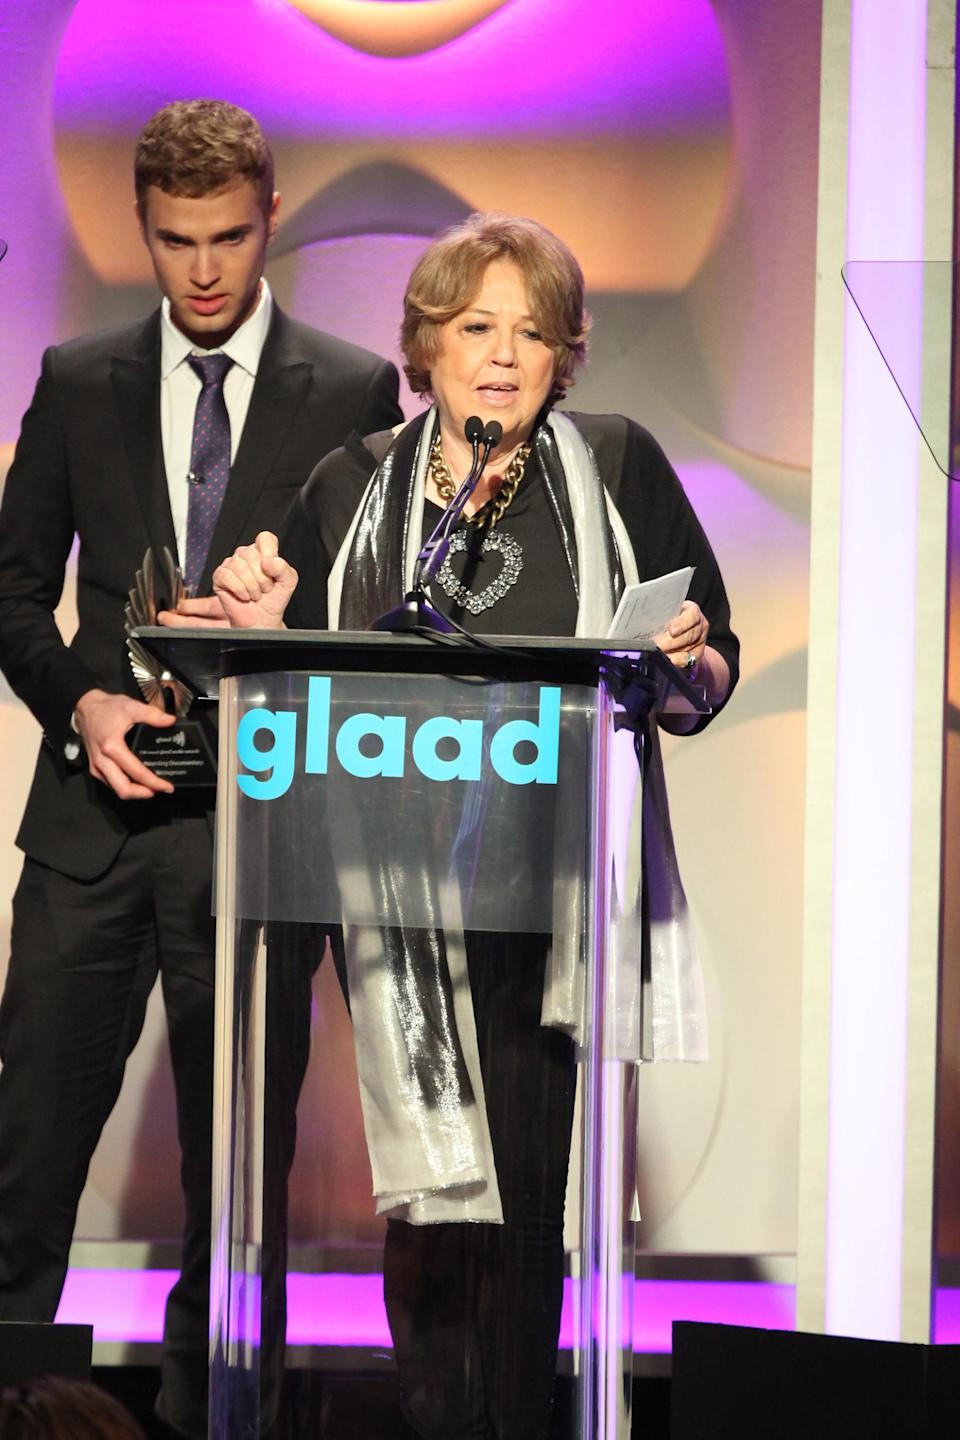 Producer Linda Bloodworth Thomason and filmmaker Shane Bitney Crone at the GLAAD Media Awards in Los Angeles in 2014. (Photo by Gabriel Olsen/Getty Images)